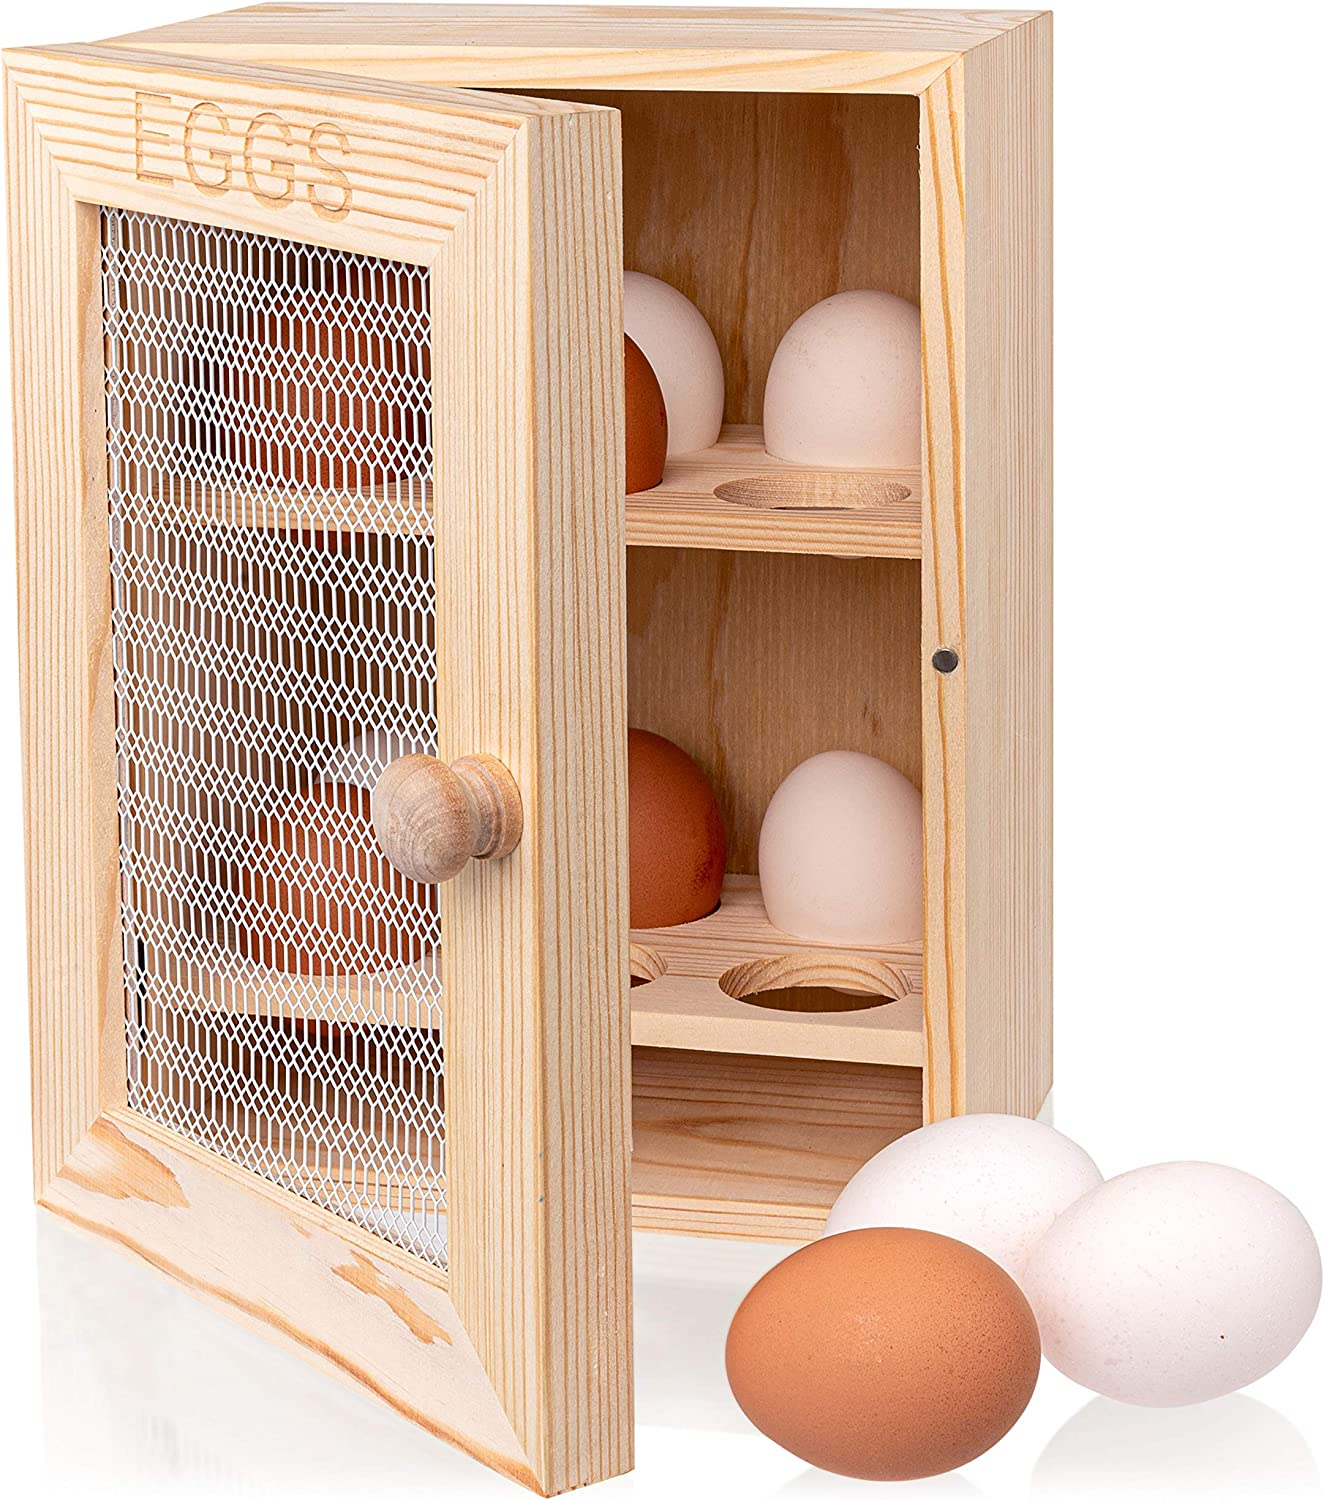 OkayJo Wooden Egg Holder 12 Eggs Countertop Cabinet – Charming Rustic Kitchen Egg Storage Tray for Display & Unfinished Vintage Decor, From Chicken Coop Egg Basket to Your Country Home Farmhouse Table